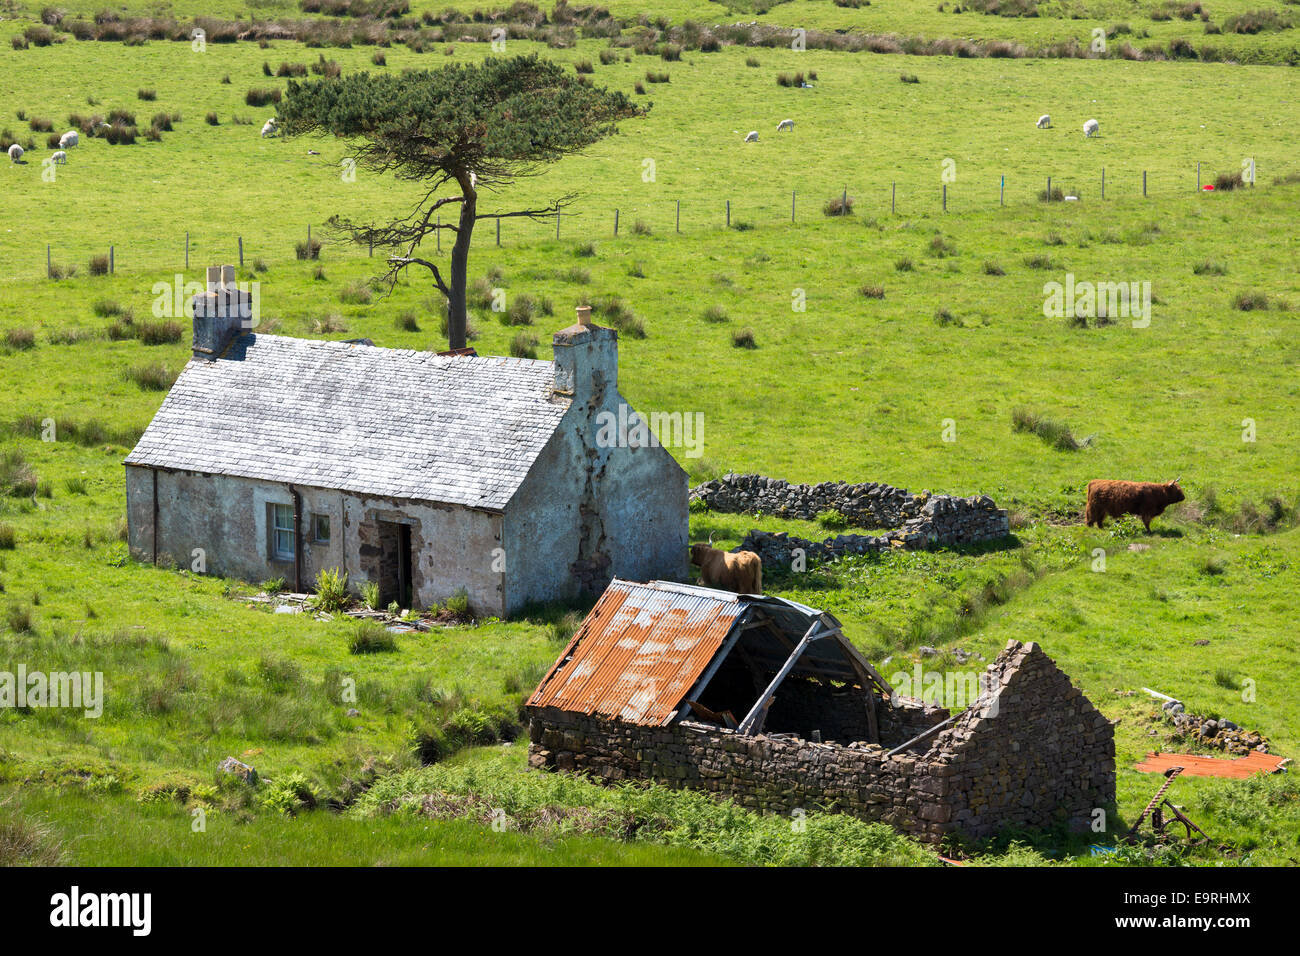 Derelict farm and barn at Kalnakill near Applecross, Wester Ross in the Scottish Highlands - Stock Image